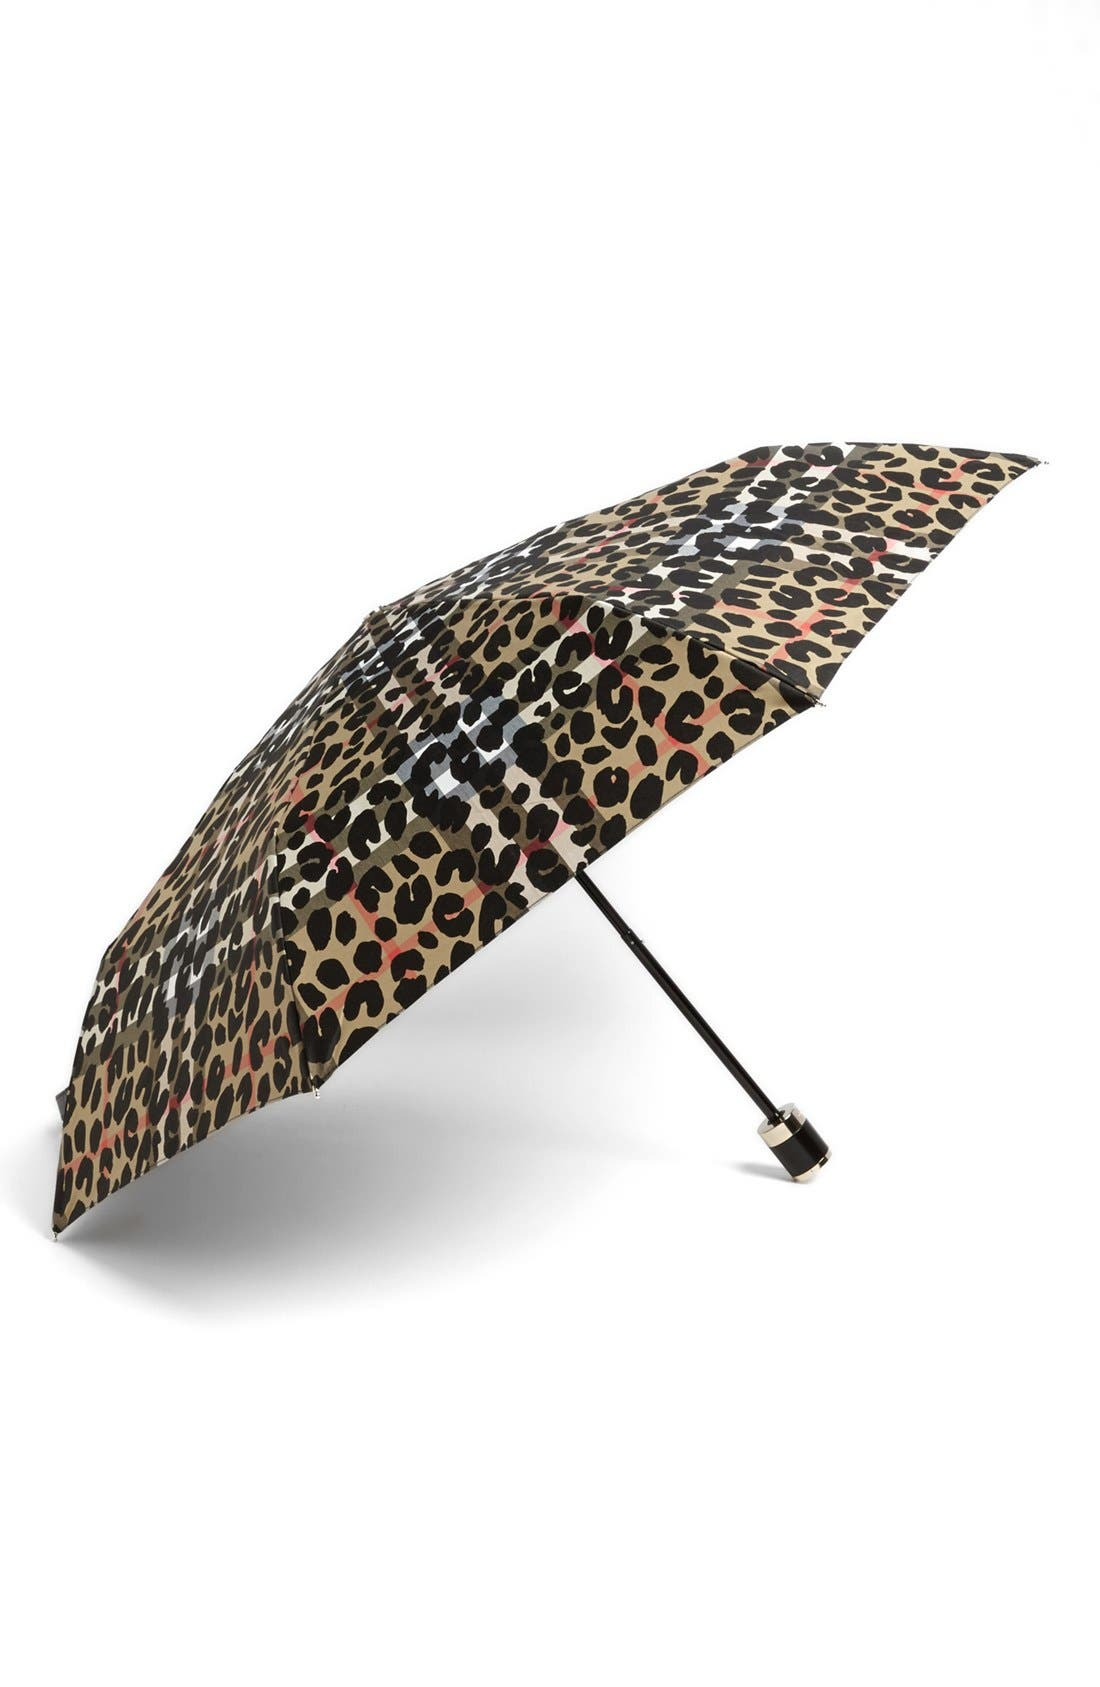 Alternate Image 1 Selected - Burberry London Compact Umbrella